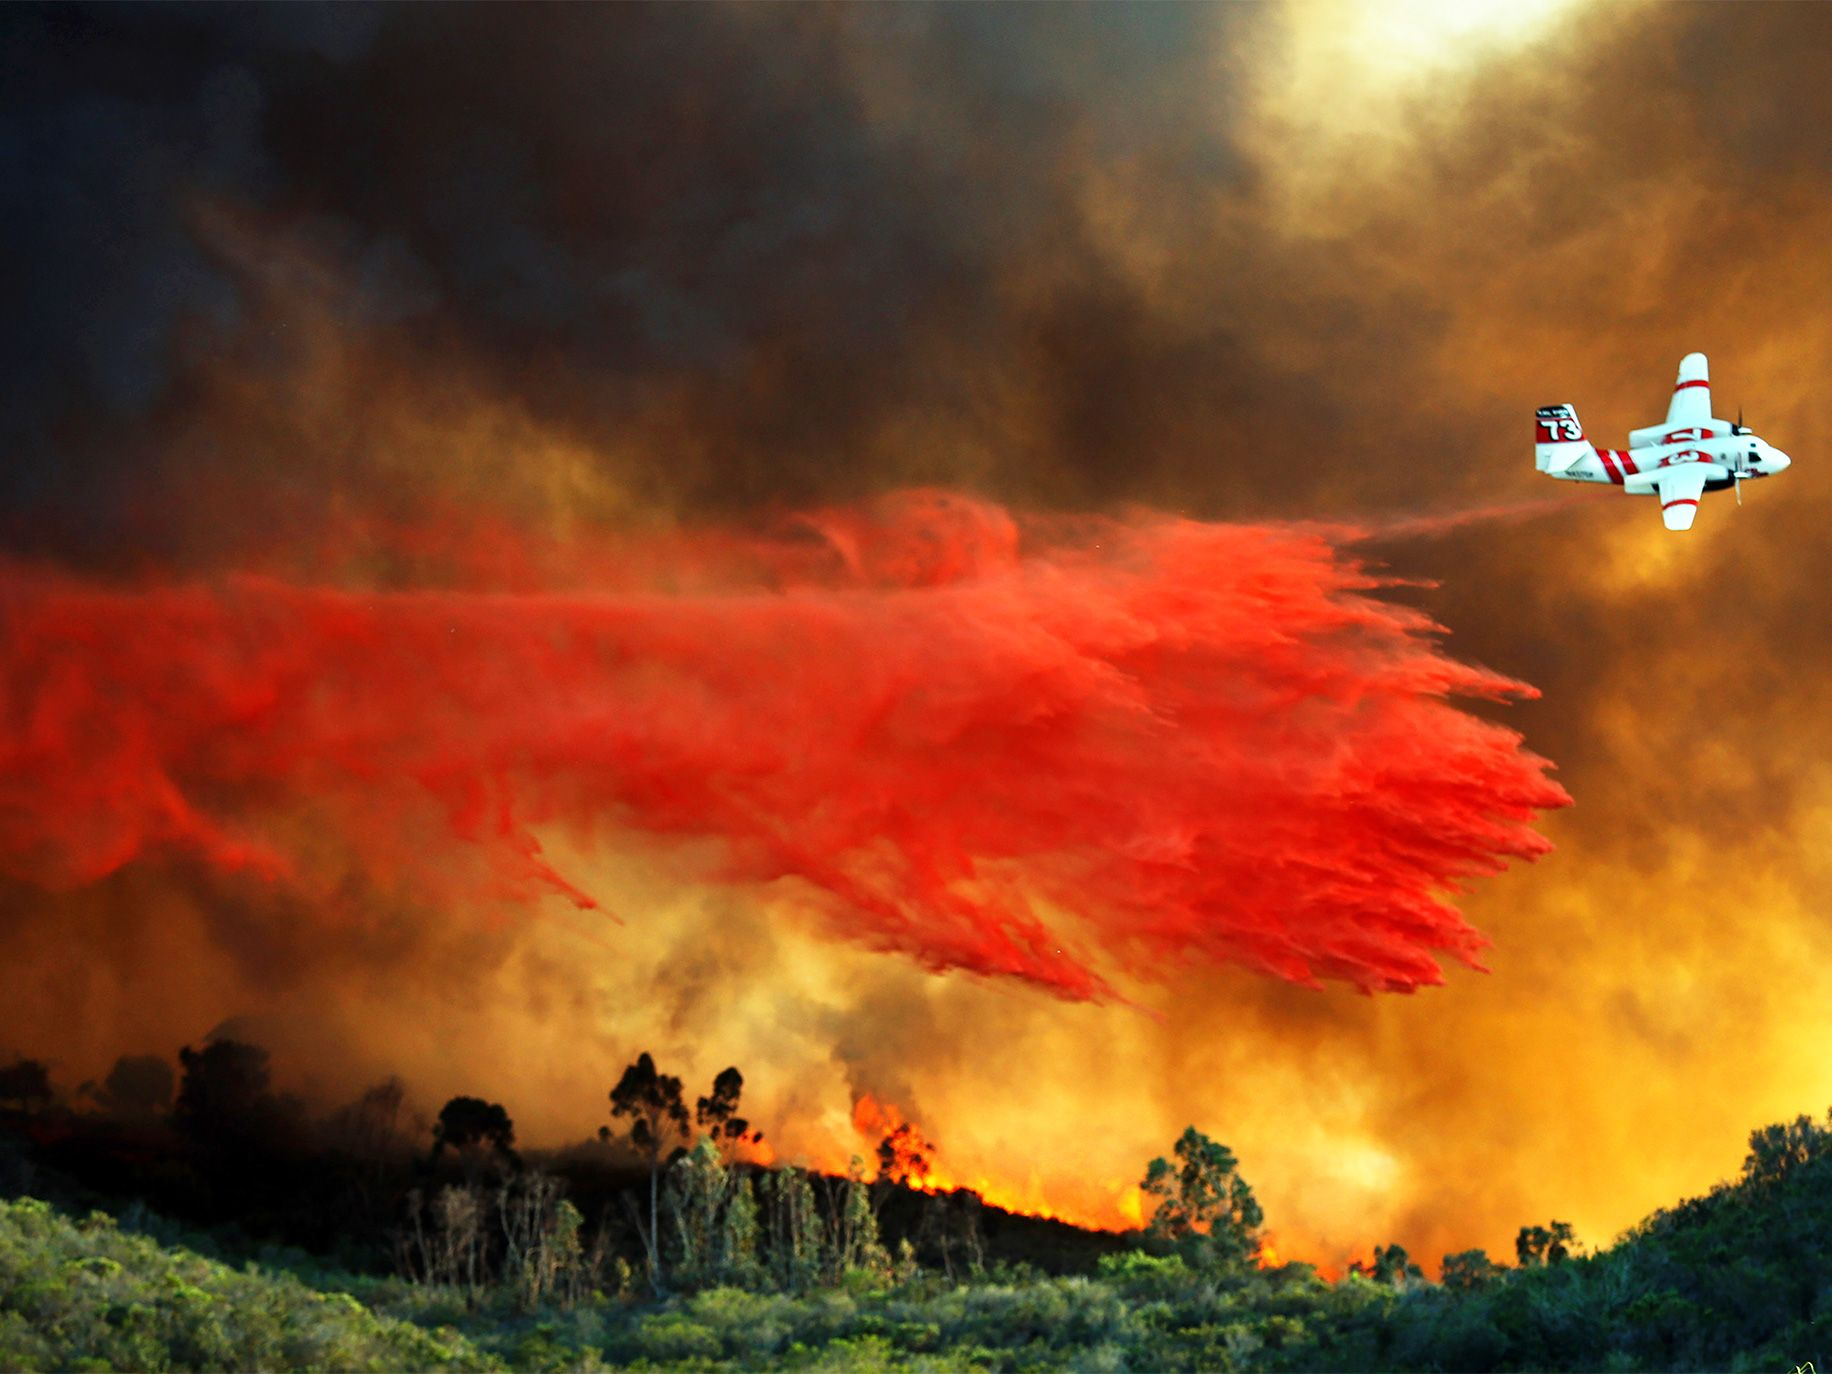 A Cal Fire airplane drops retardant on a large hilltop home that caught fire during a 2014 wildfire in San Marcos.